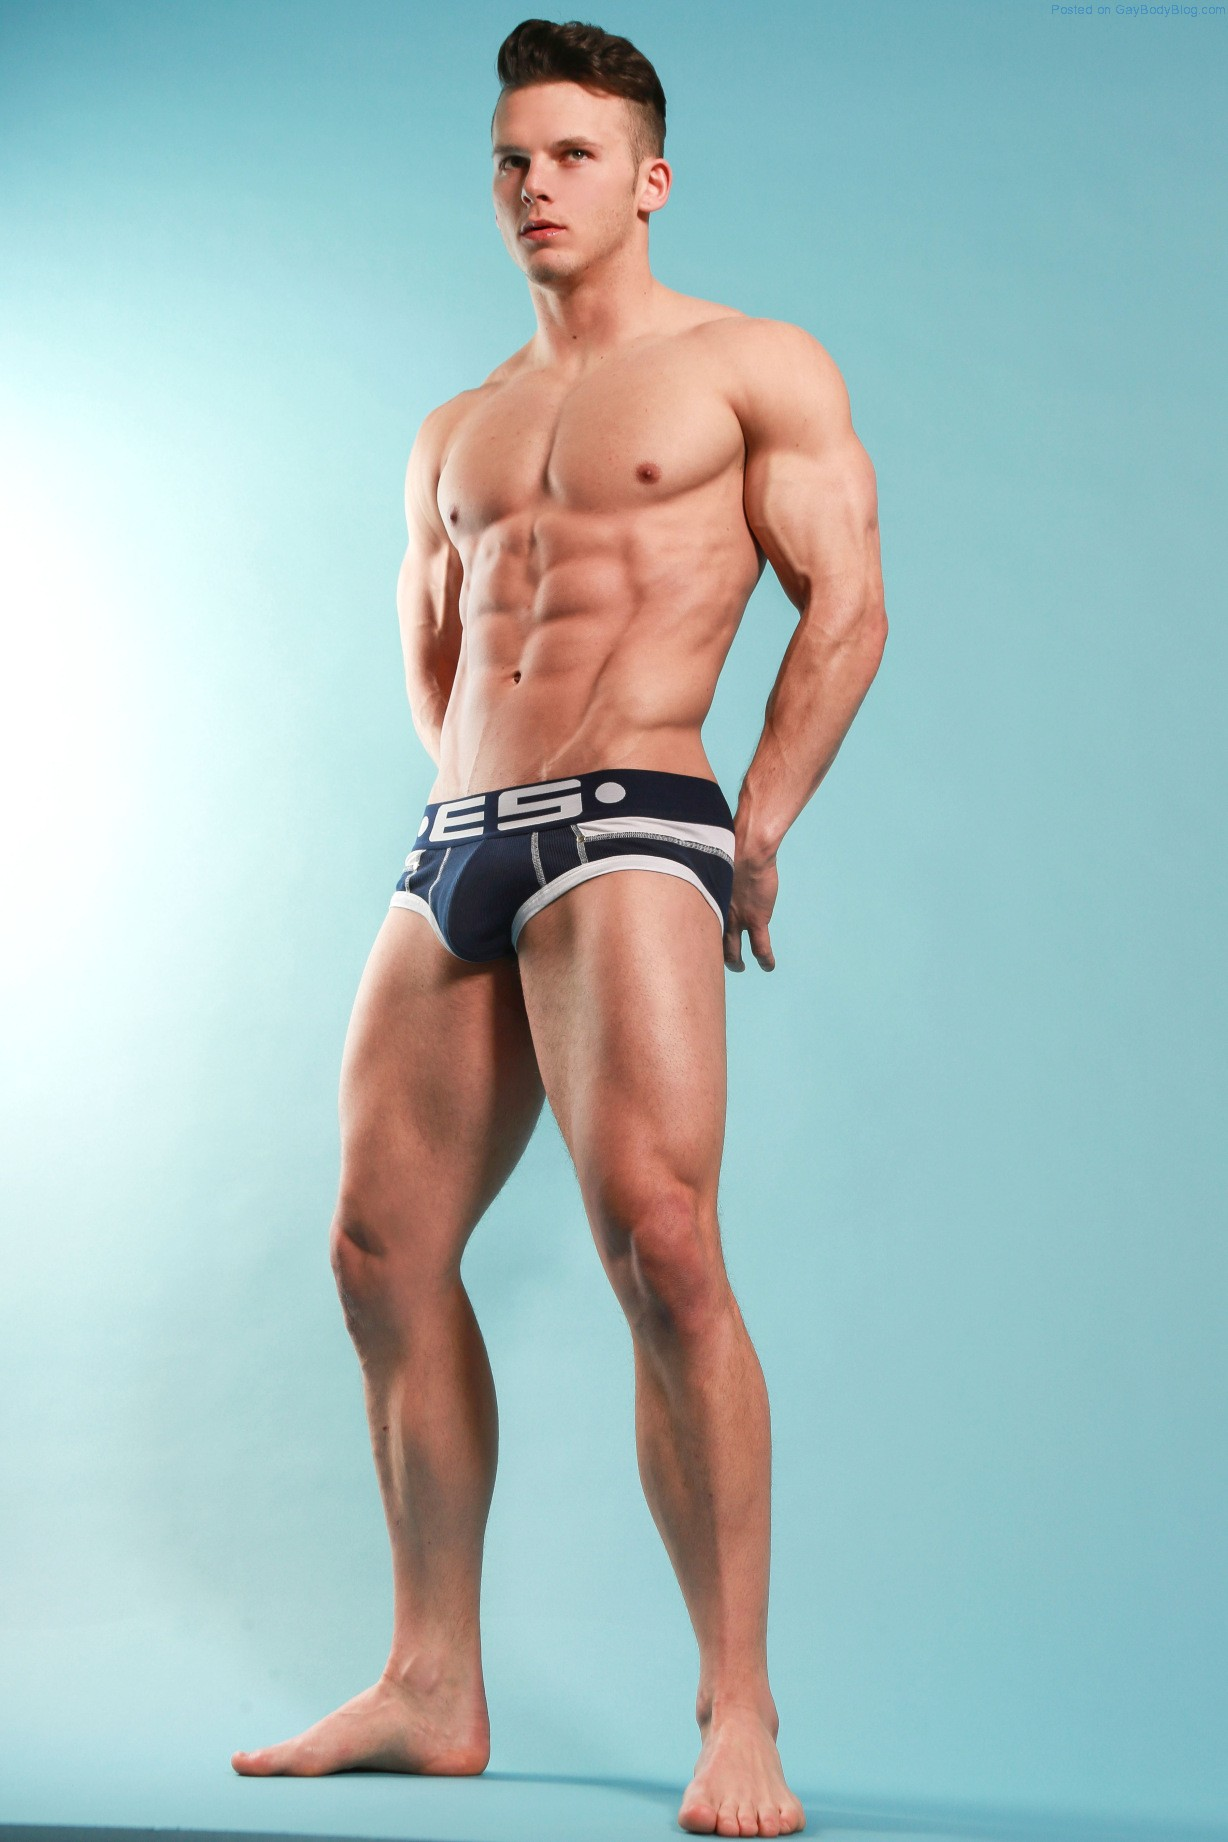 perfect muscular stud in massage session with jock